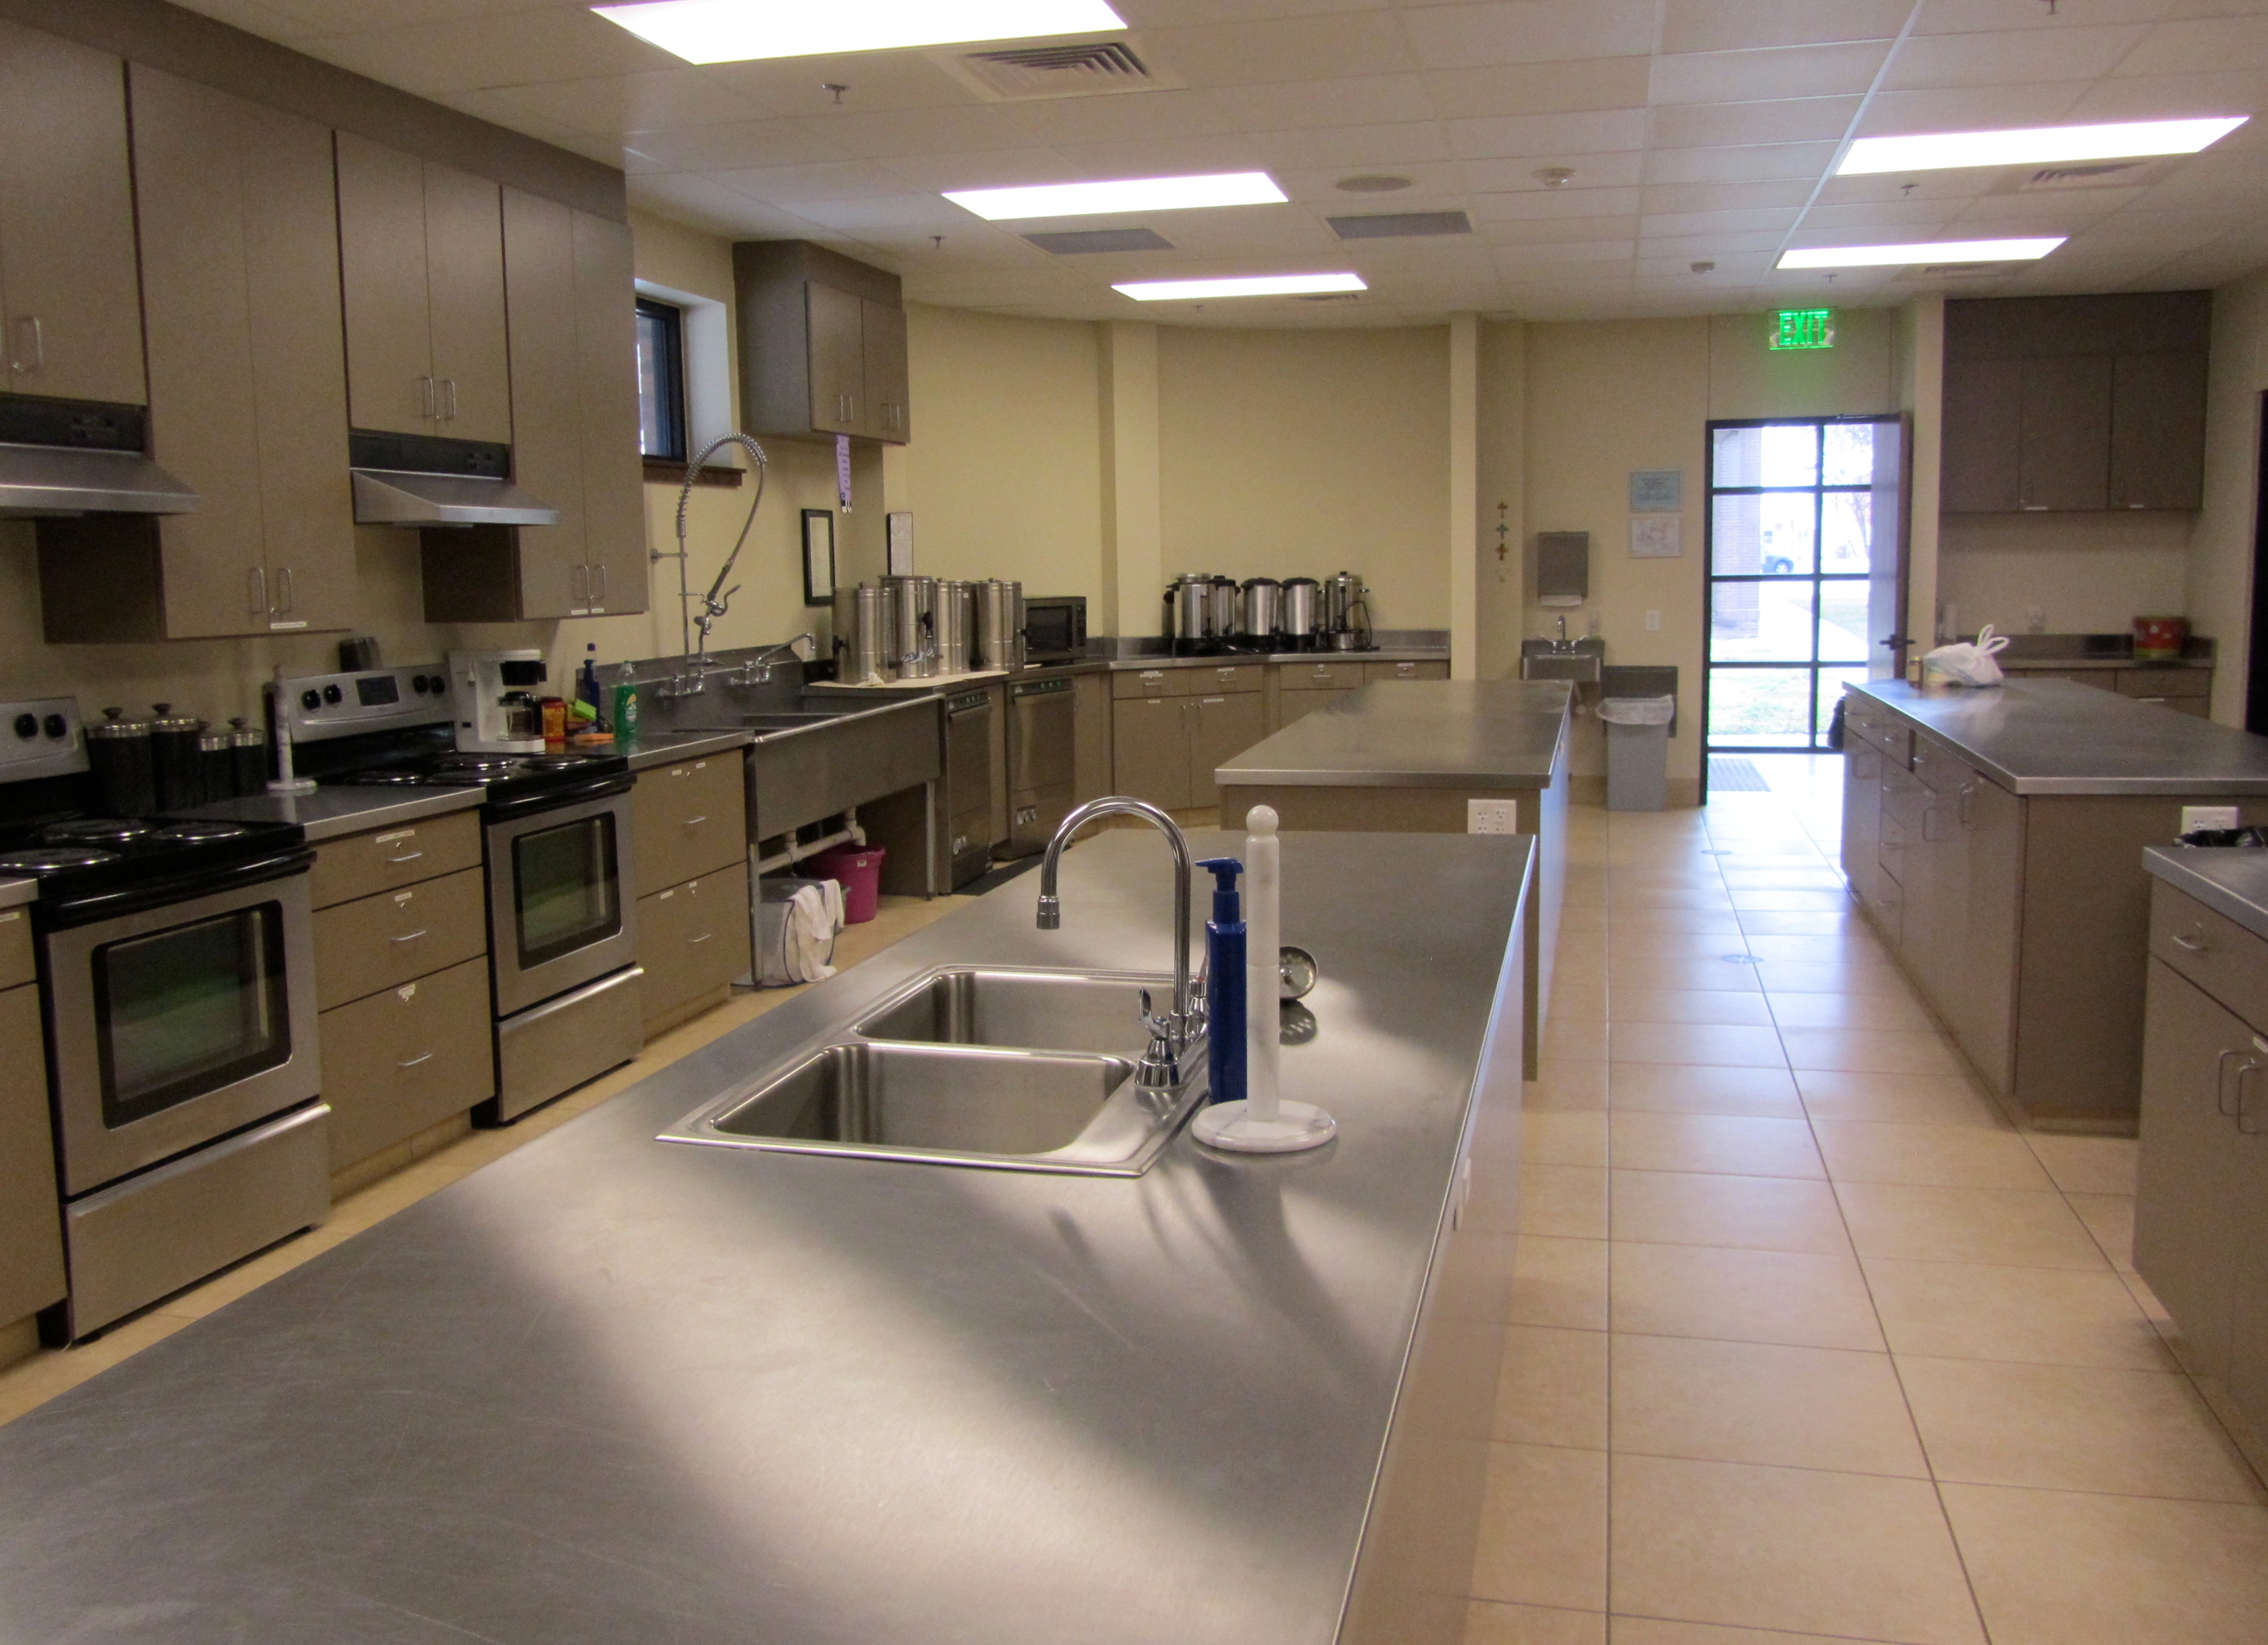 Uncategorized Church Kitchen Design church kitchens and accessibility 5 issues to consider